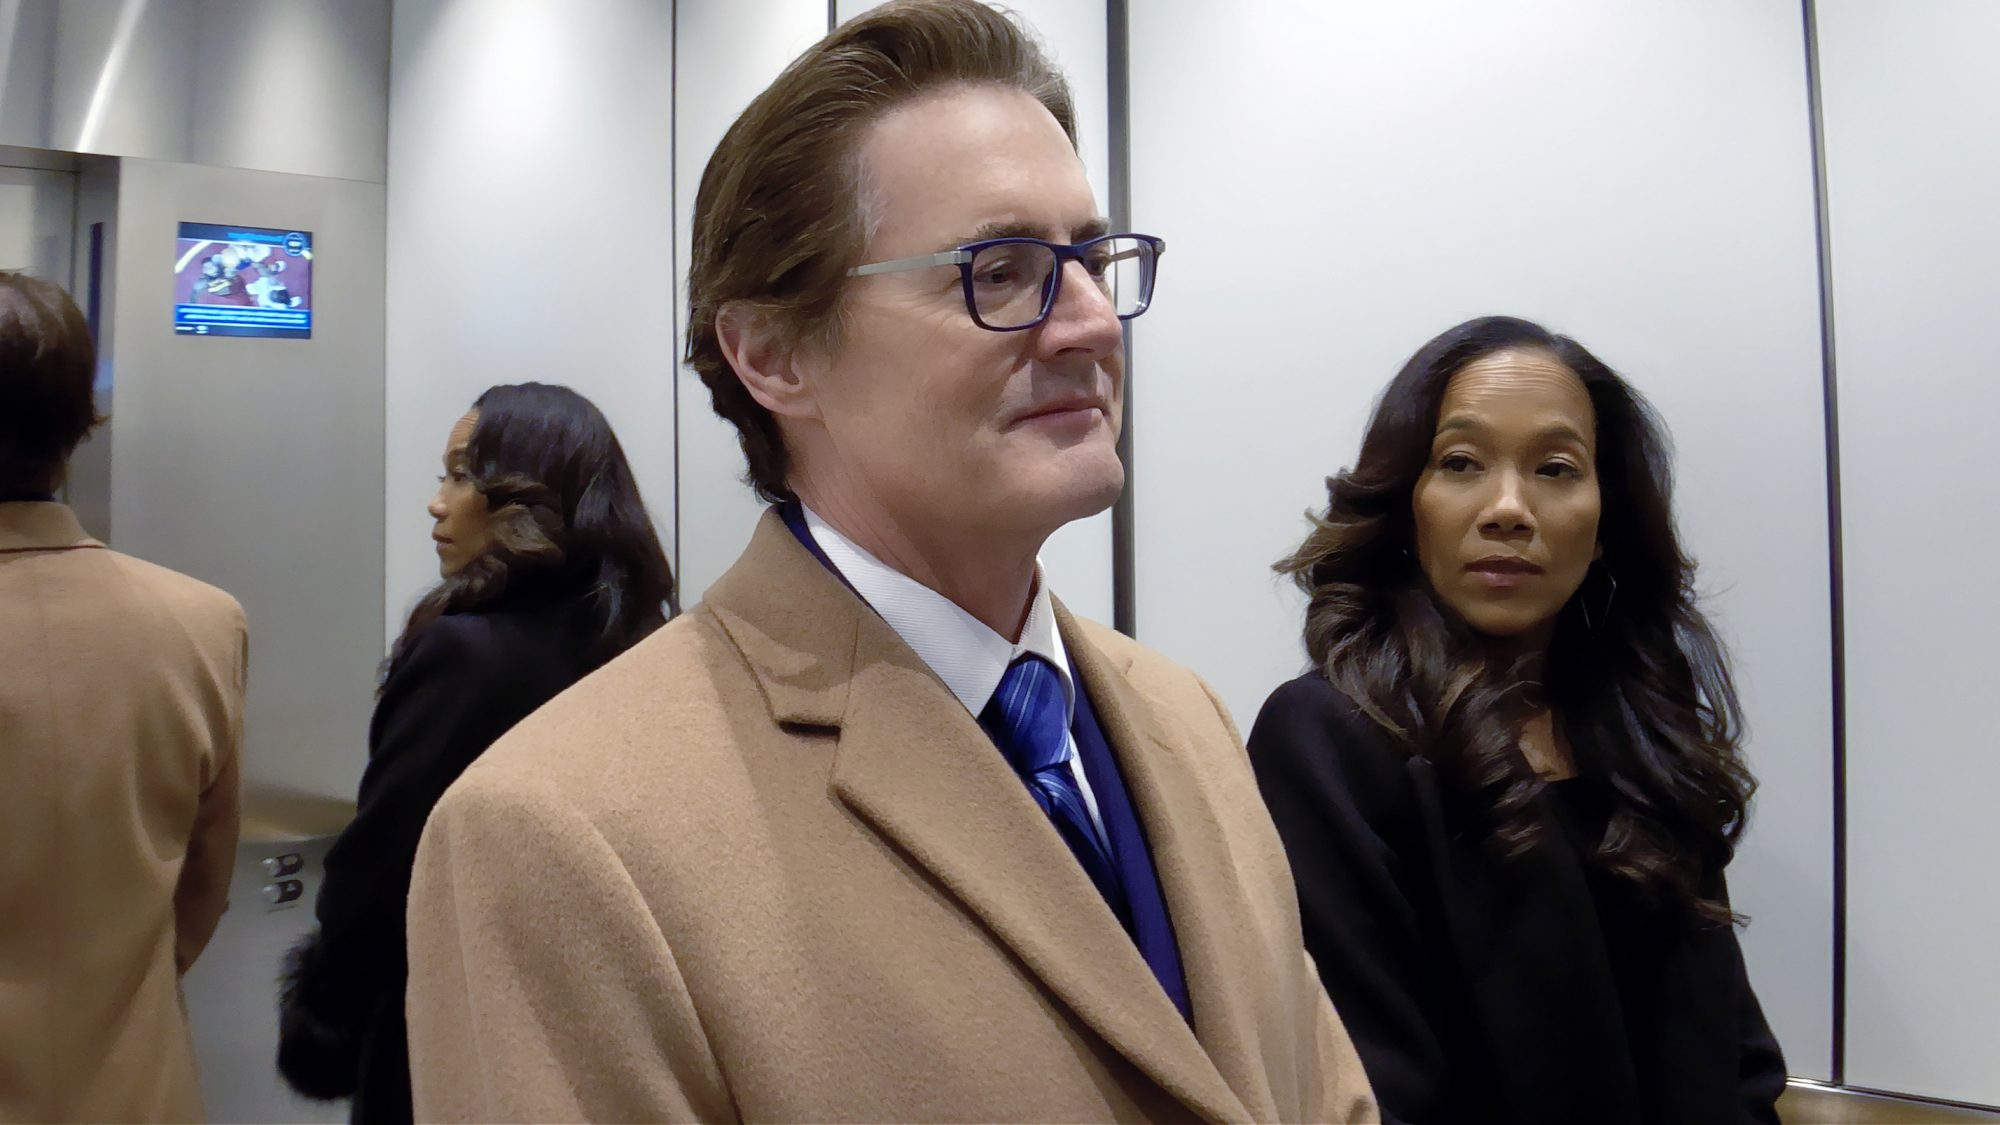 Kyle MacLachlan as David Seton and Sonja Sohn as Myra in High Flying Bird, directed by Steven Soderbergh